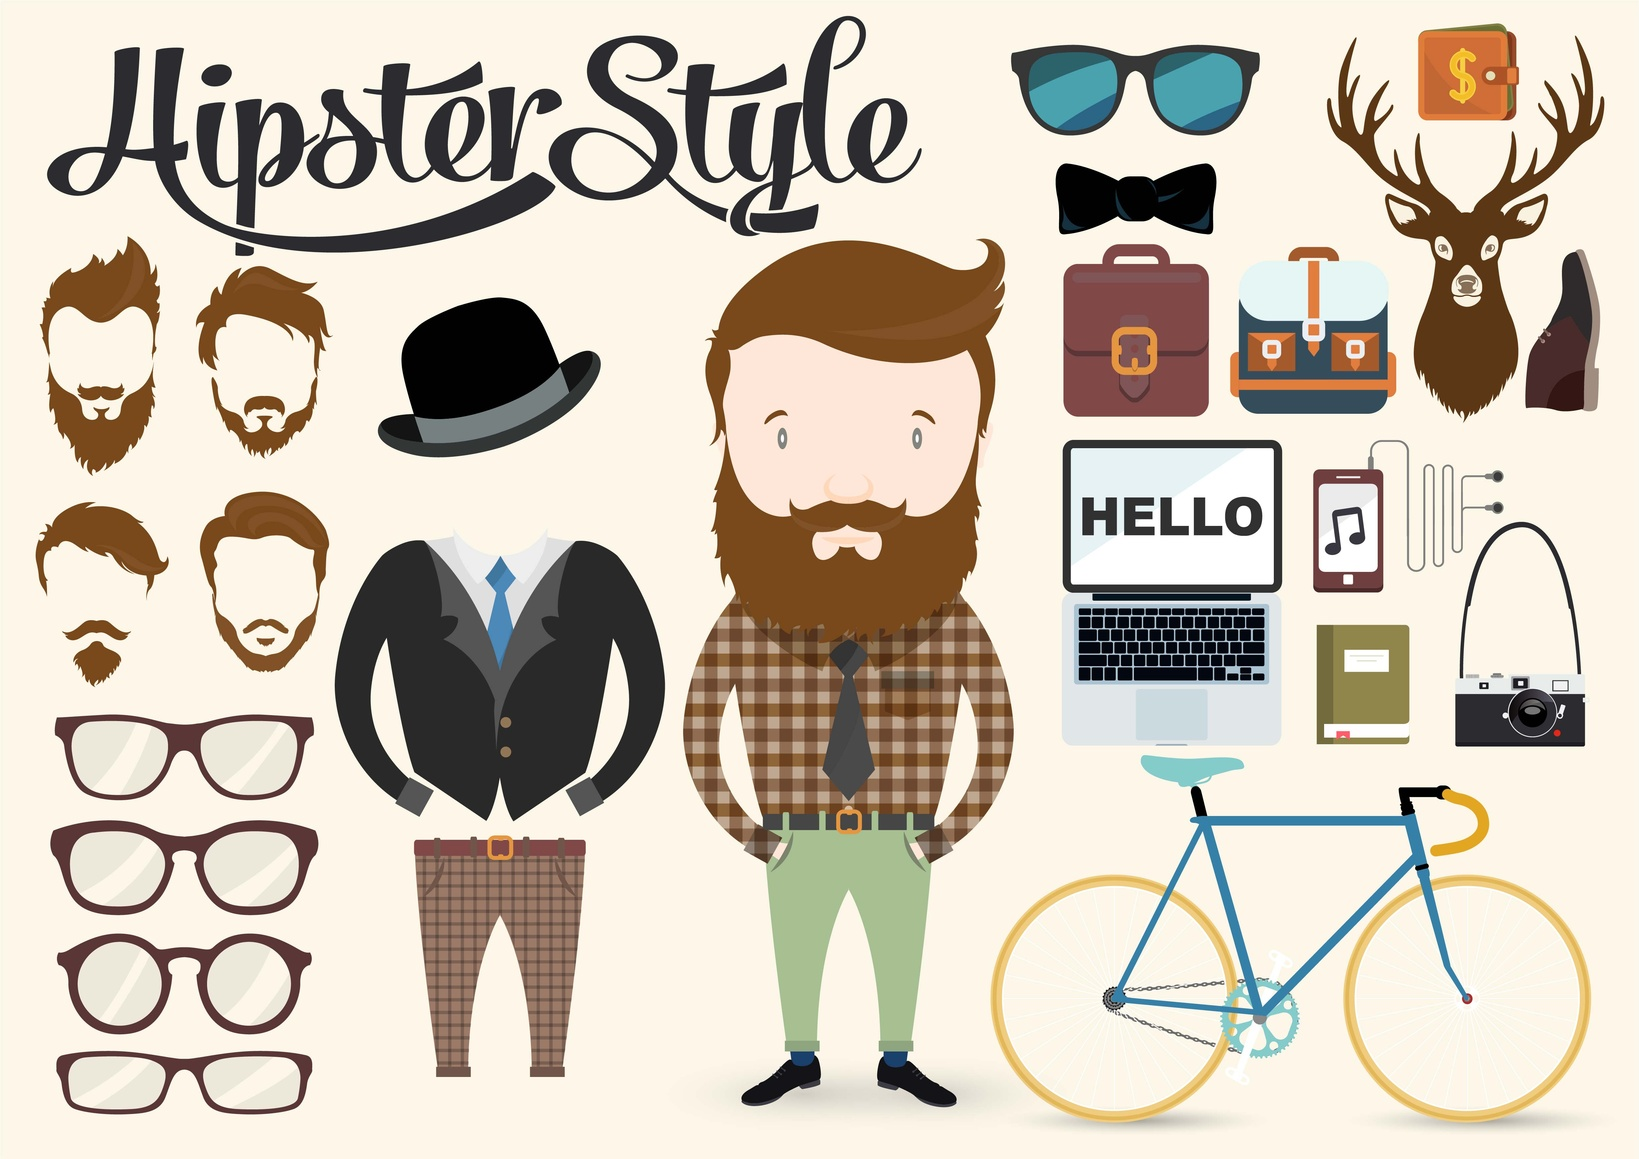 Hipster character illustration with elements and icons